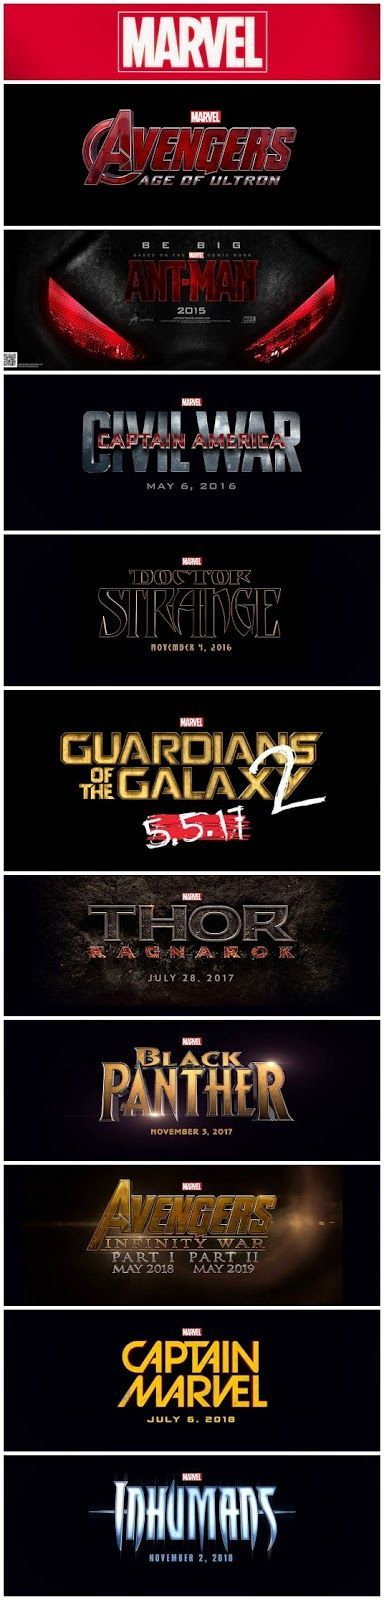 Disney Sisters: Marvel Studios Announce: Phase 3 of Marvel Cinematic Universe.